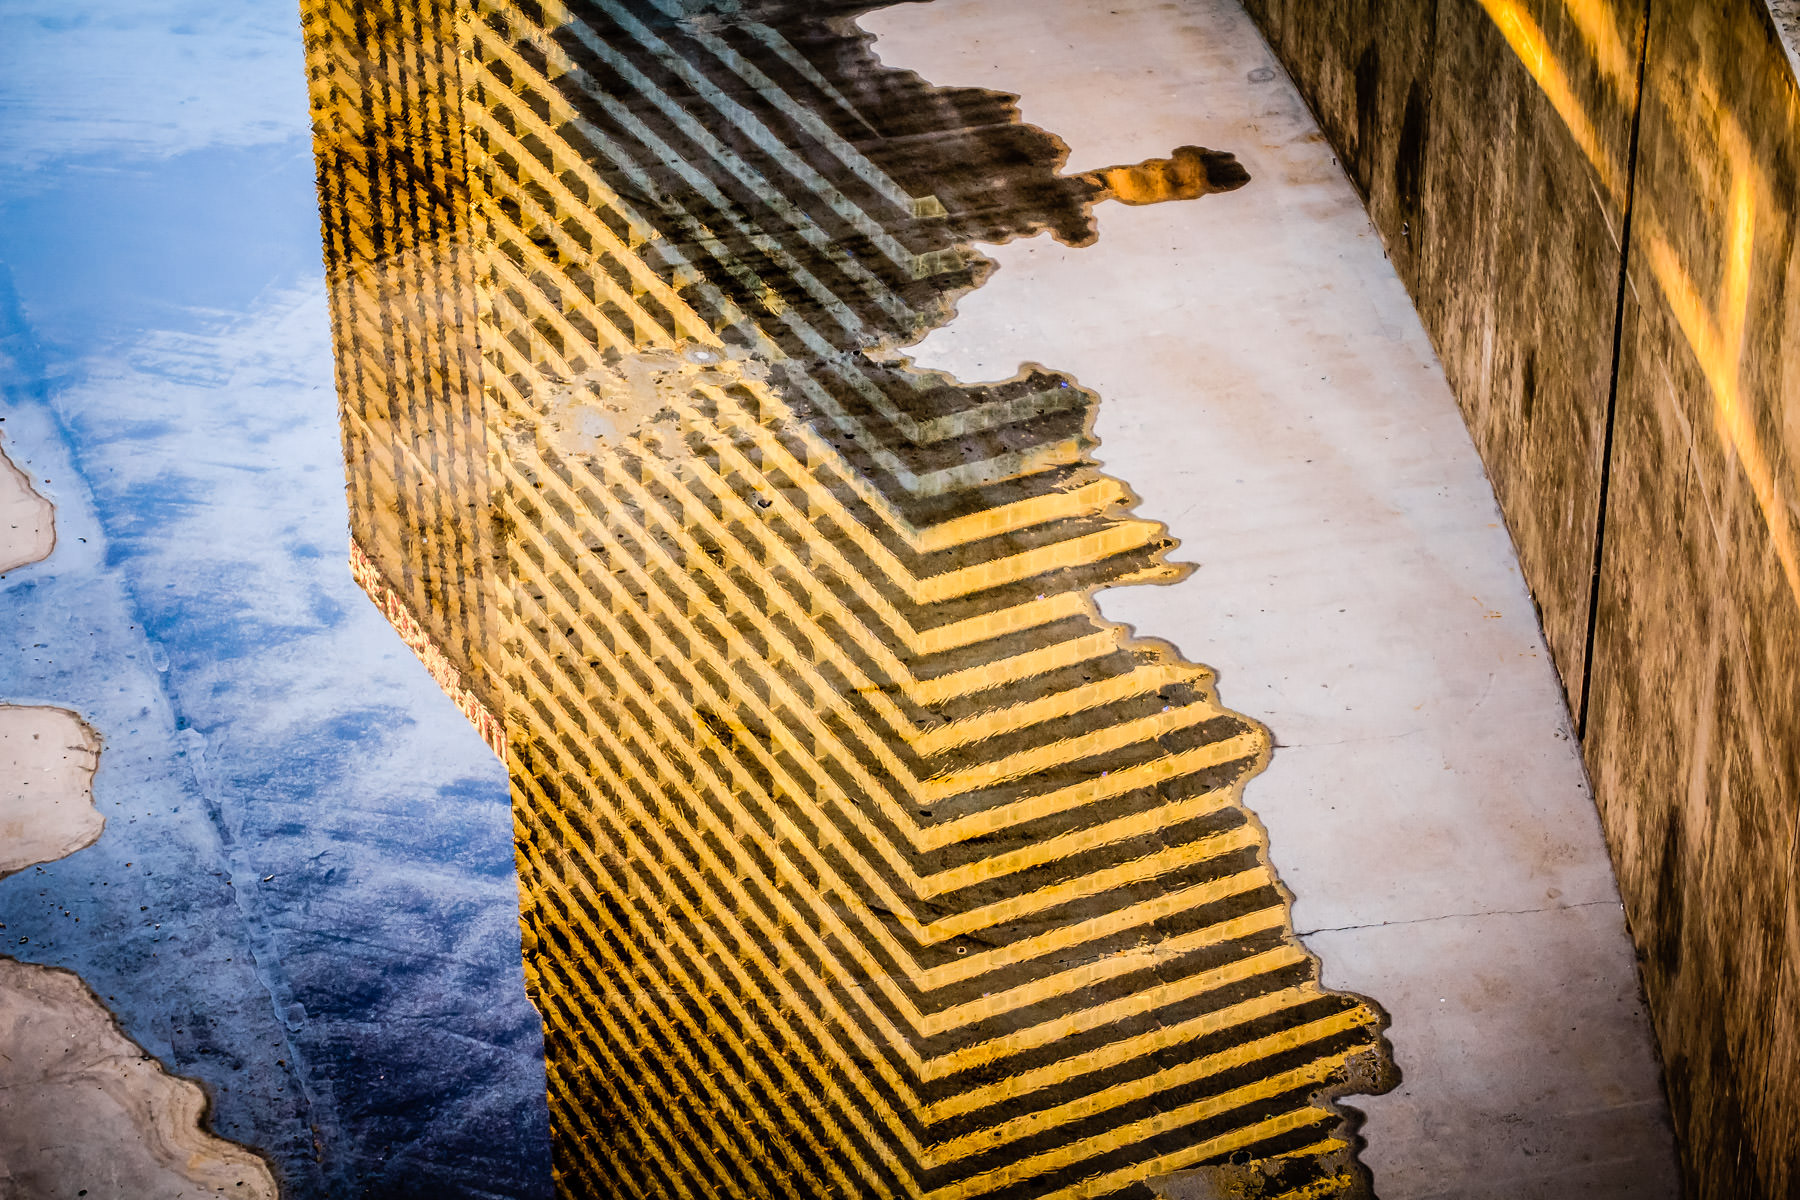 The Cosmopolitan of Las Vegas, reflected in a nearby puddle as the sun rises over the Las Vegas Valley.